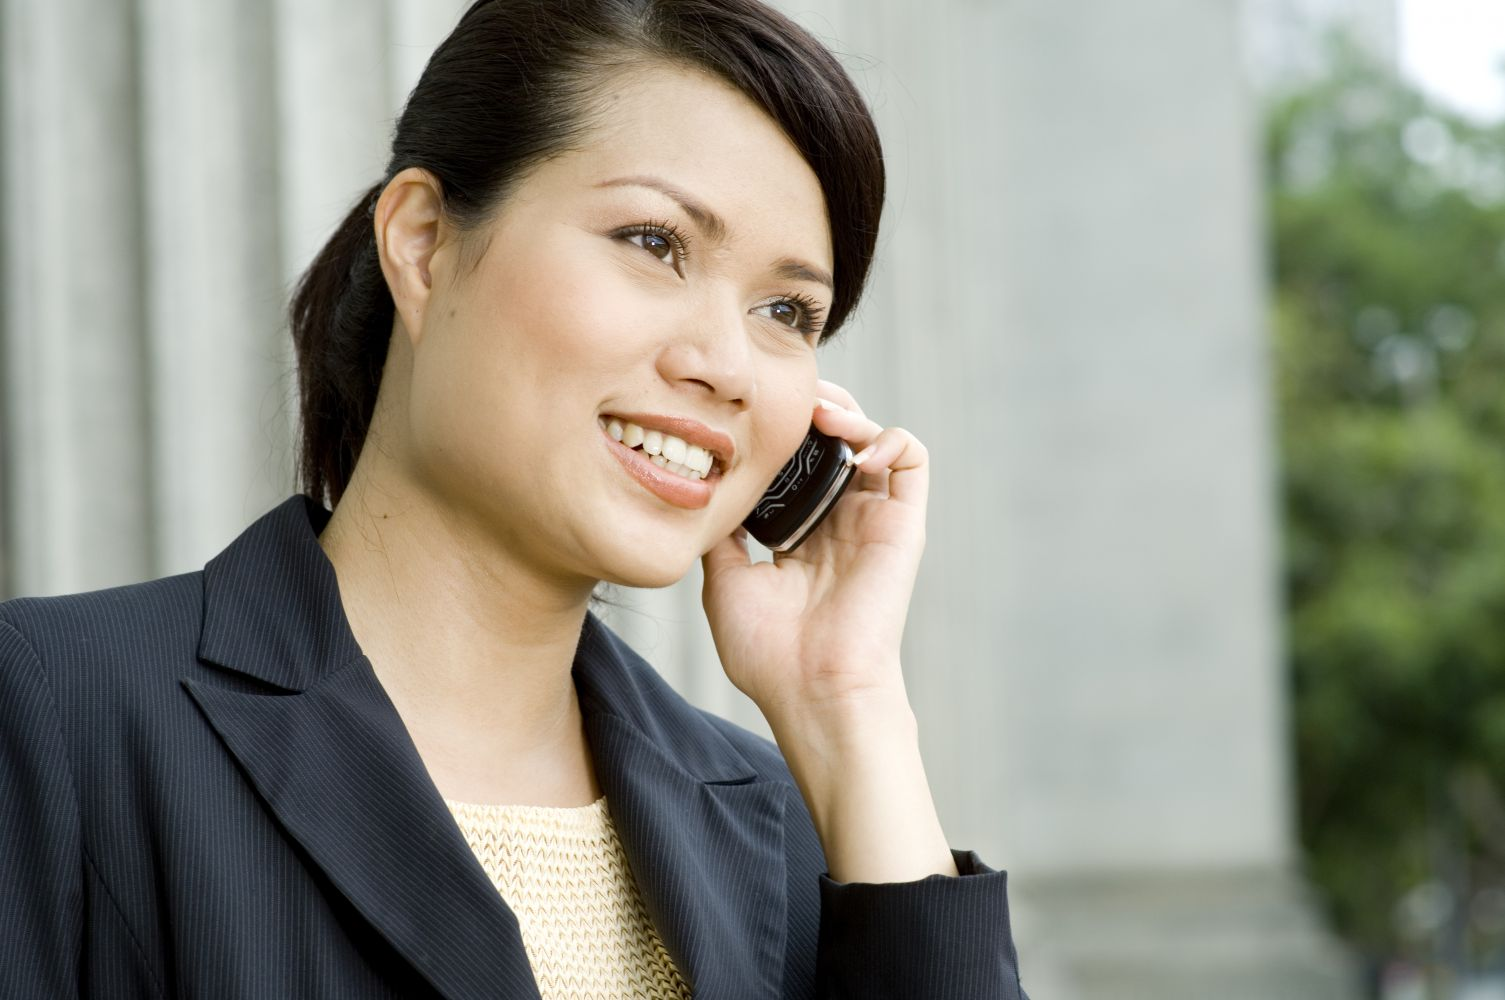 Woman contacts the clinical psychologist in Honolulu, HI